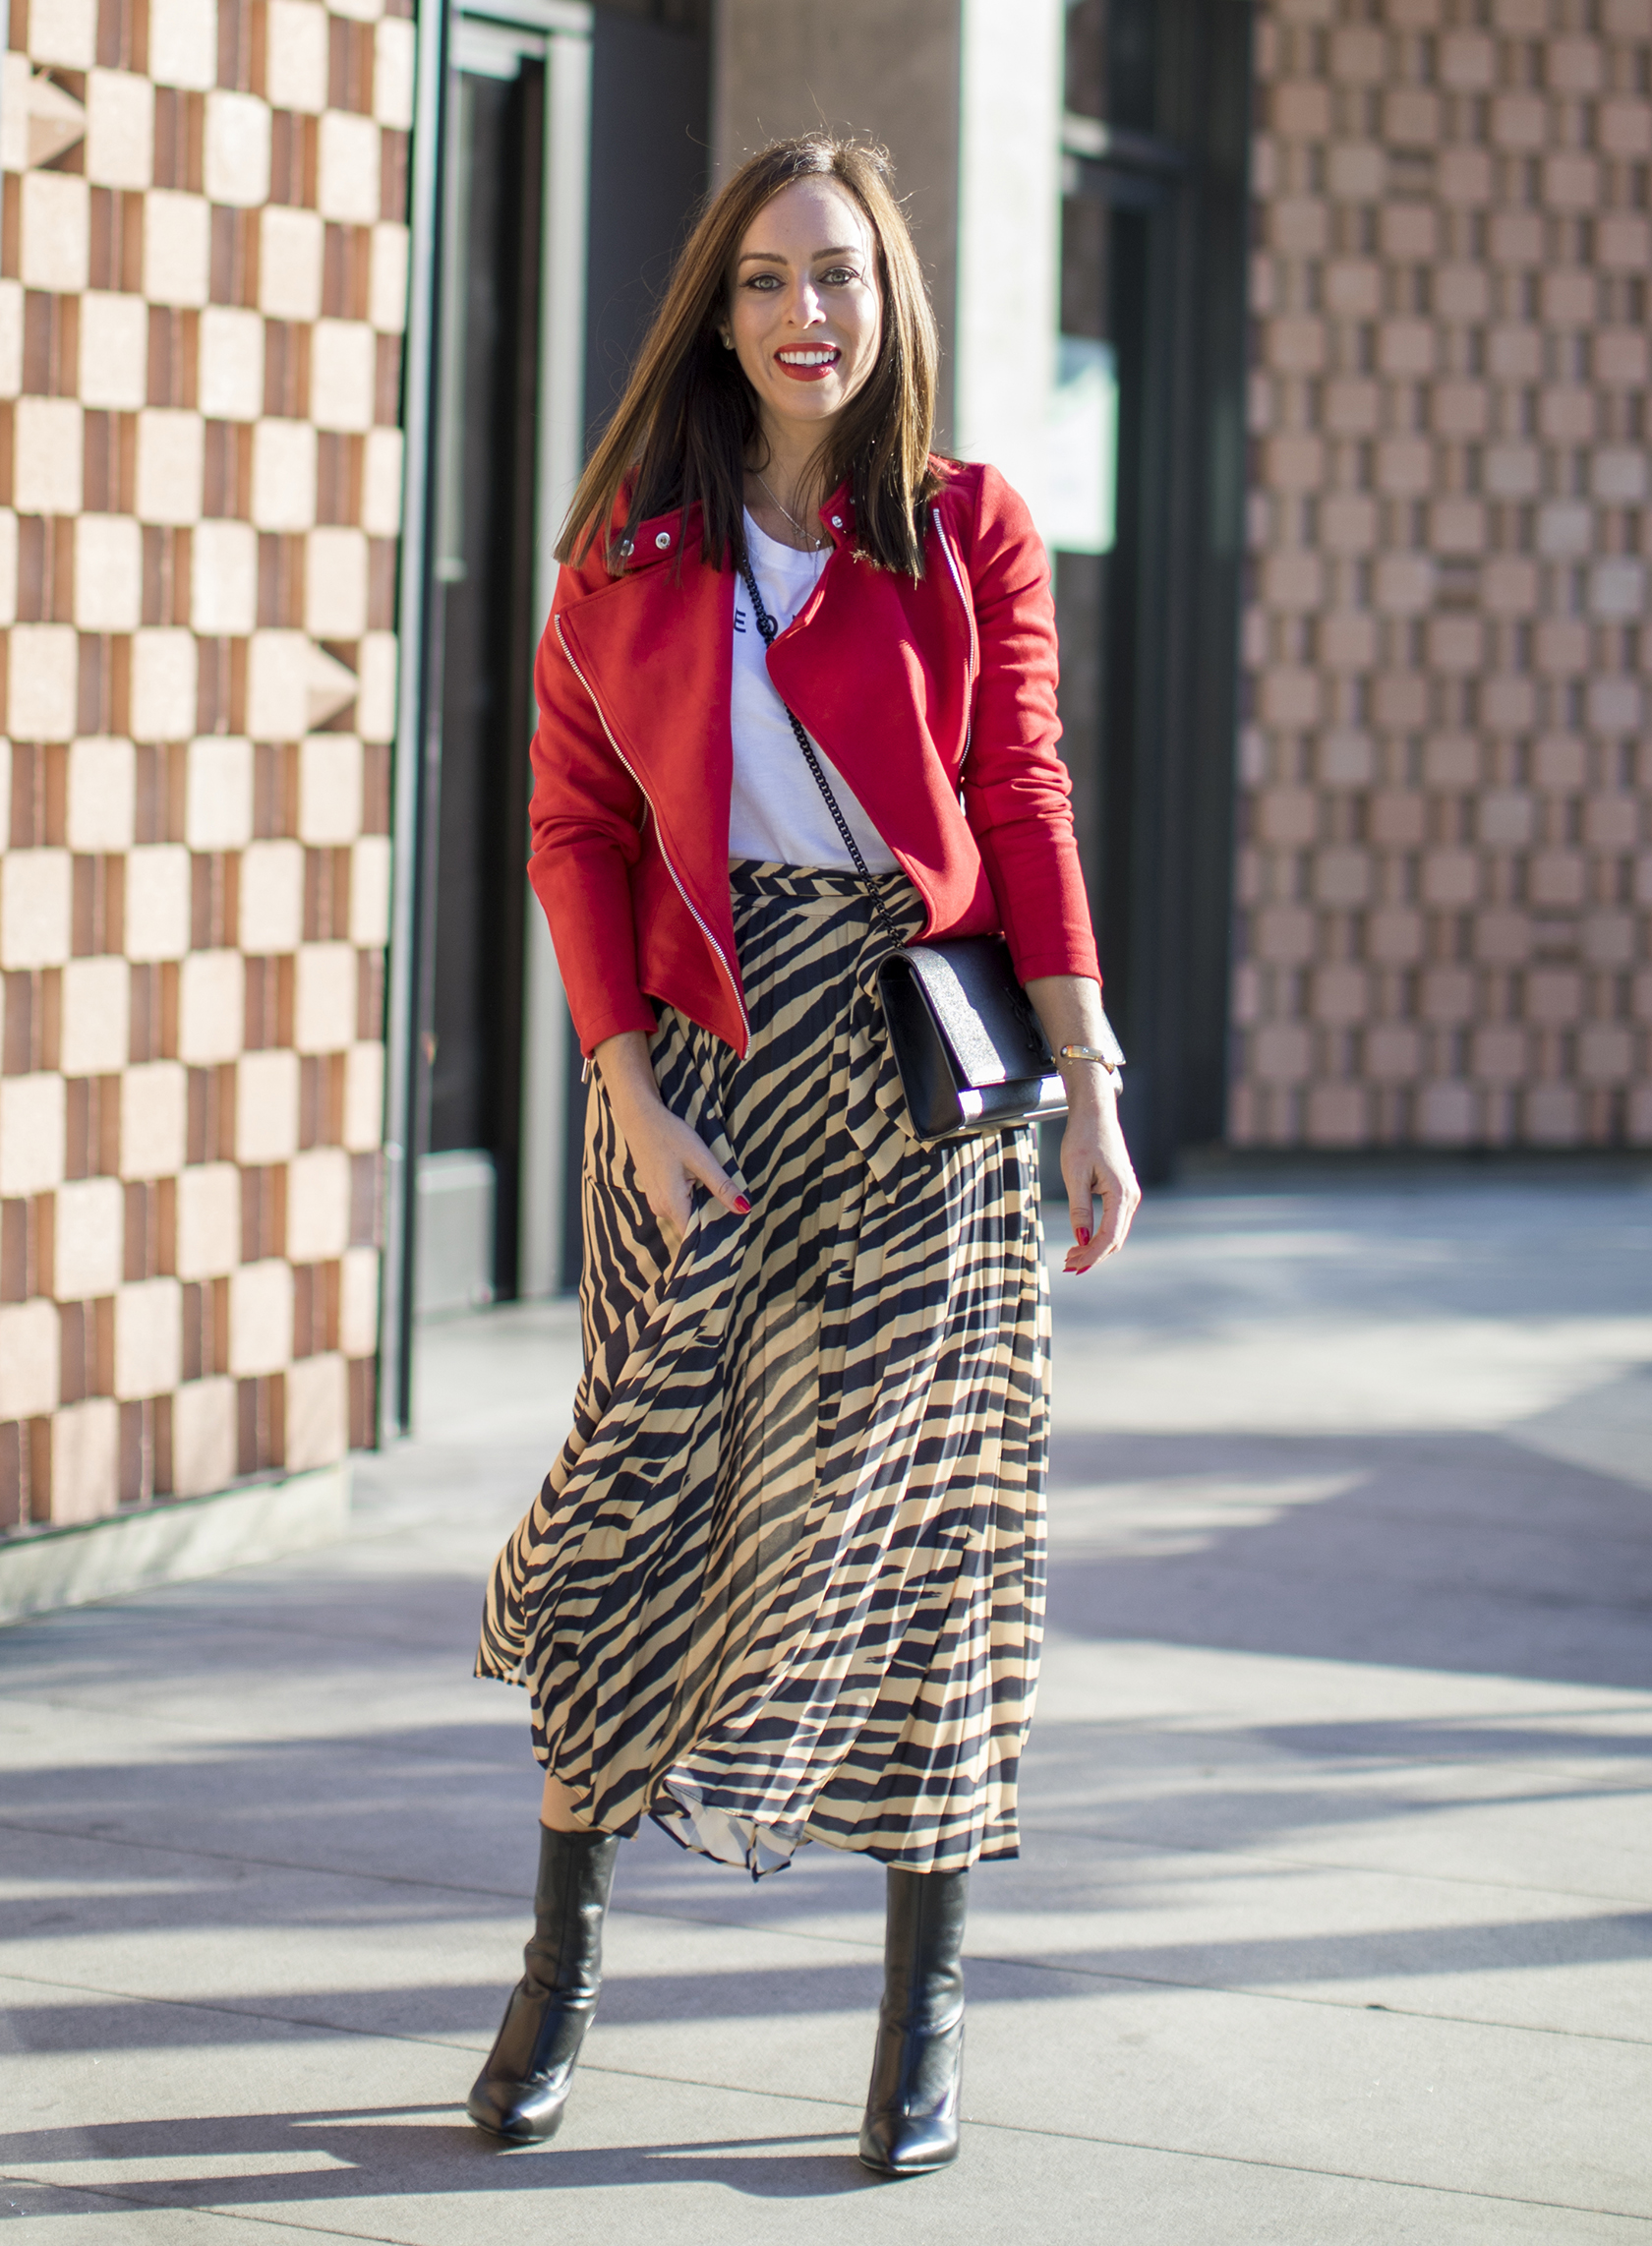 woman pairs a flowy zebra print skirt with boots and a red jacket